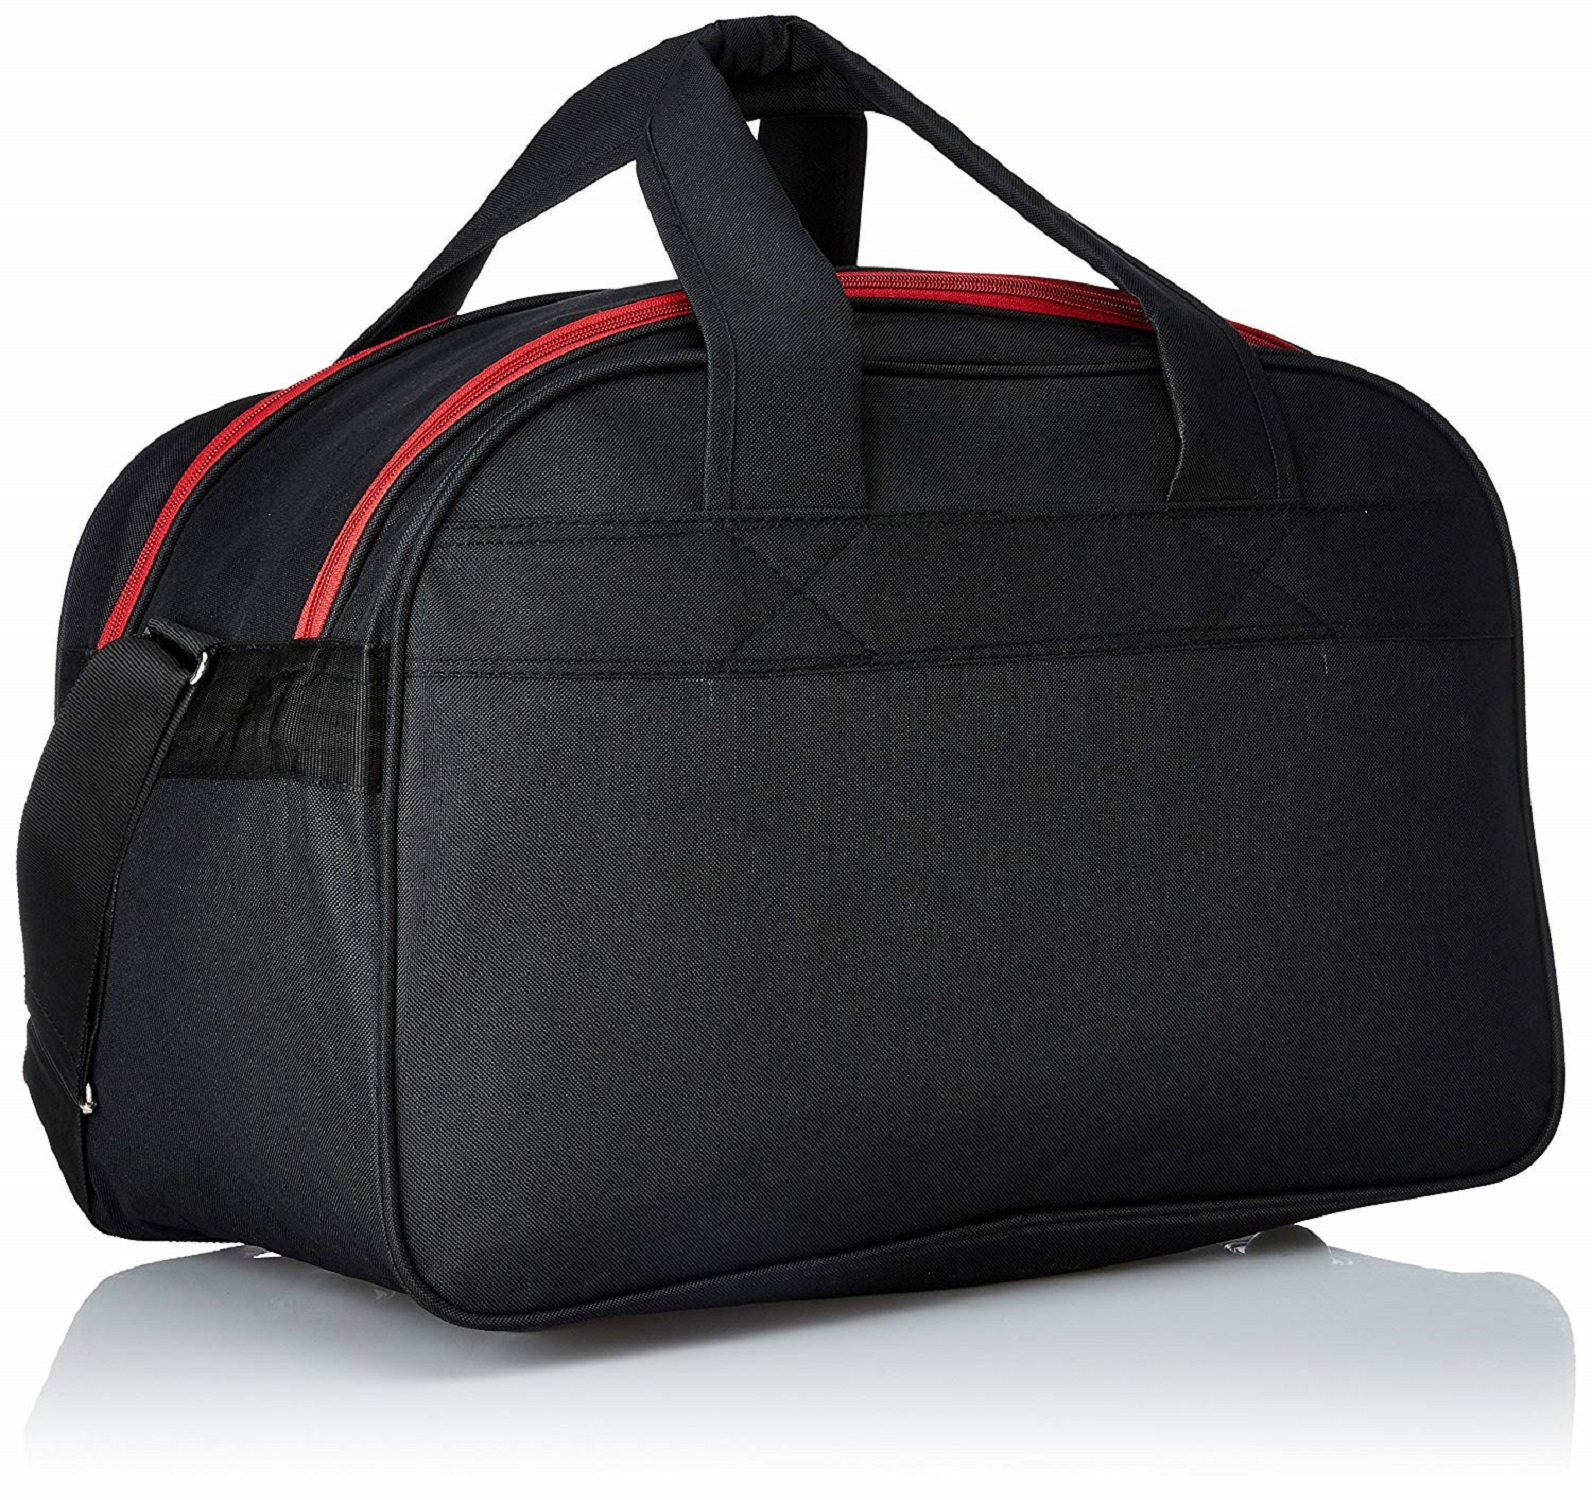 Kuber Industries Polyster  Travel Duffle Bag (Black & Red) Switchon Audi 3 -CTKTC8840